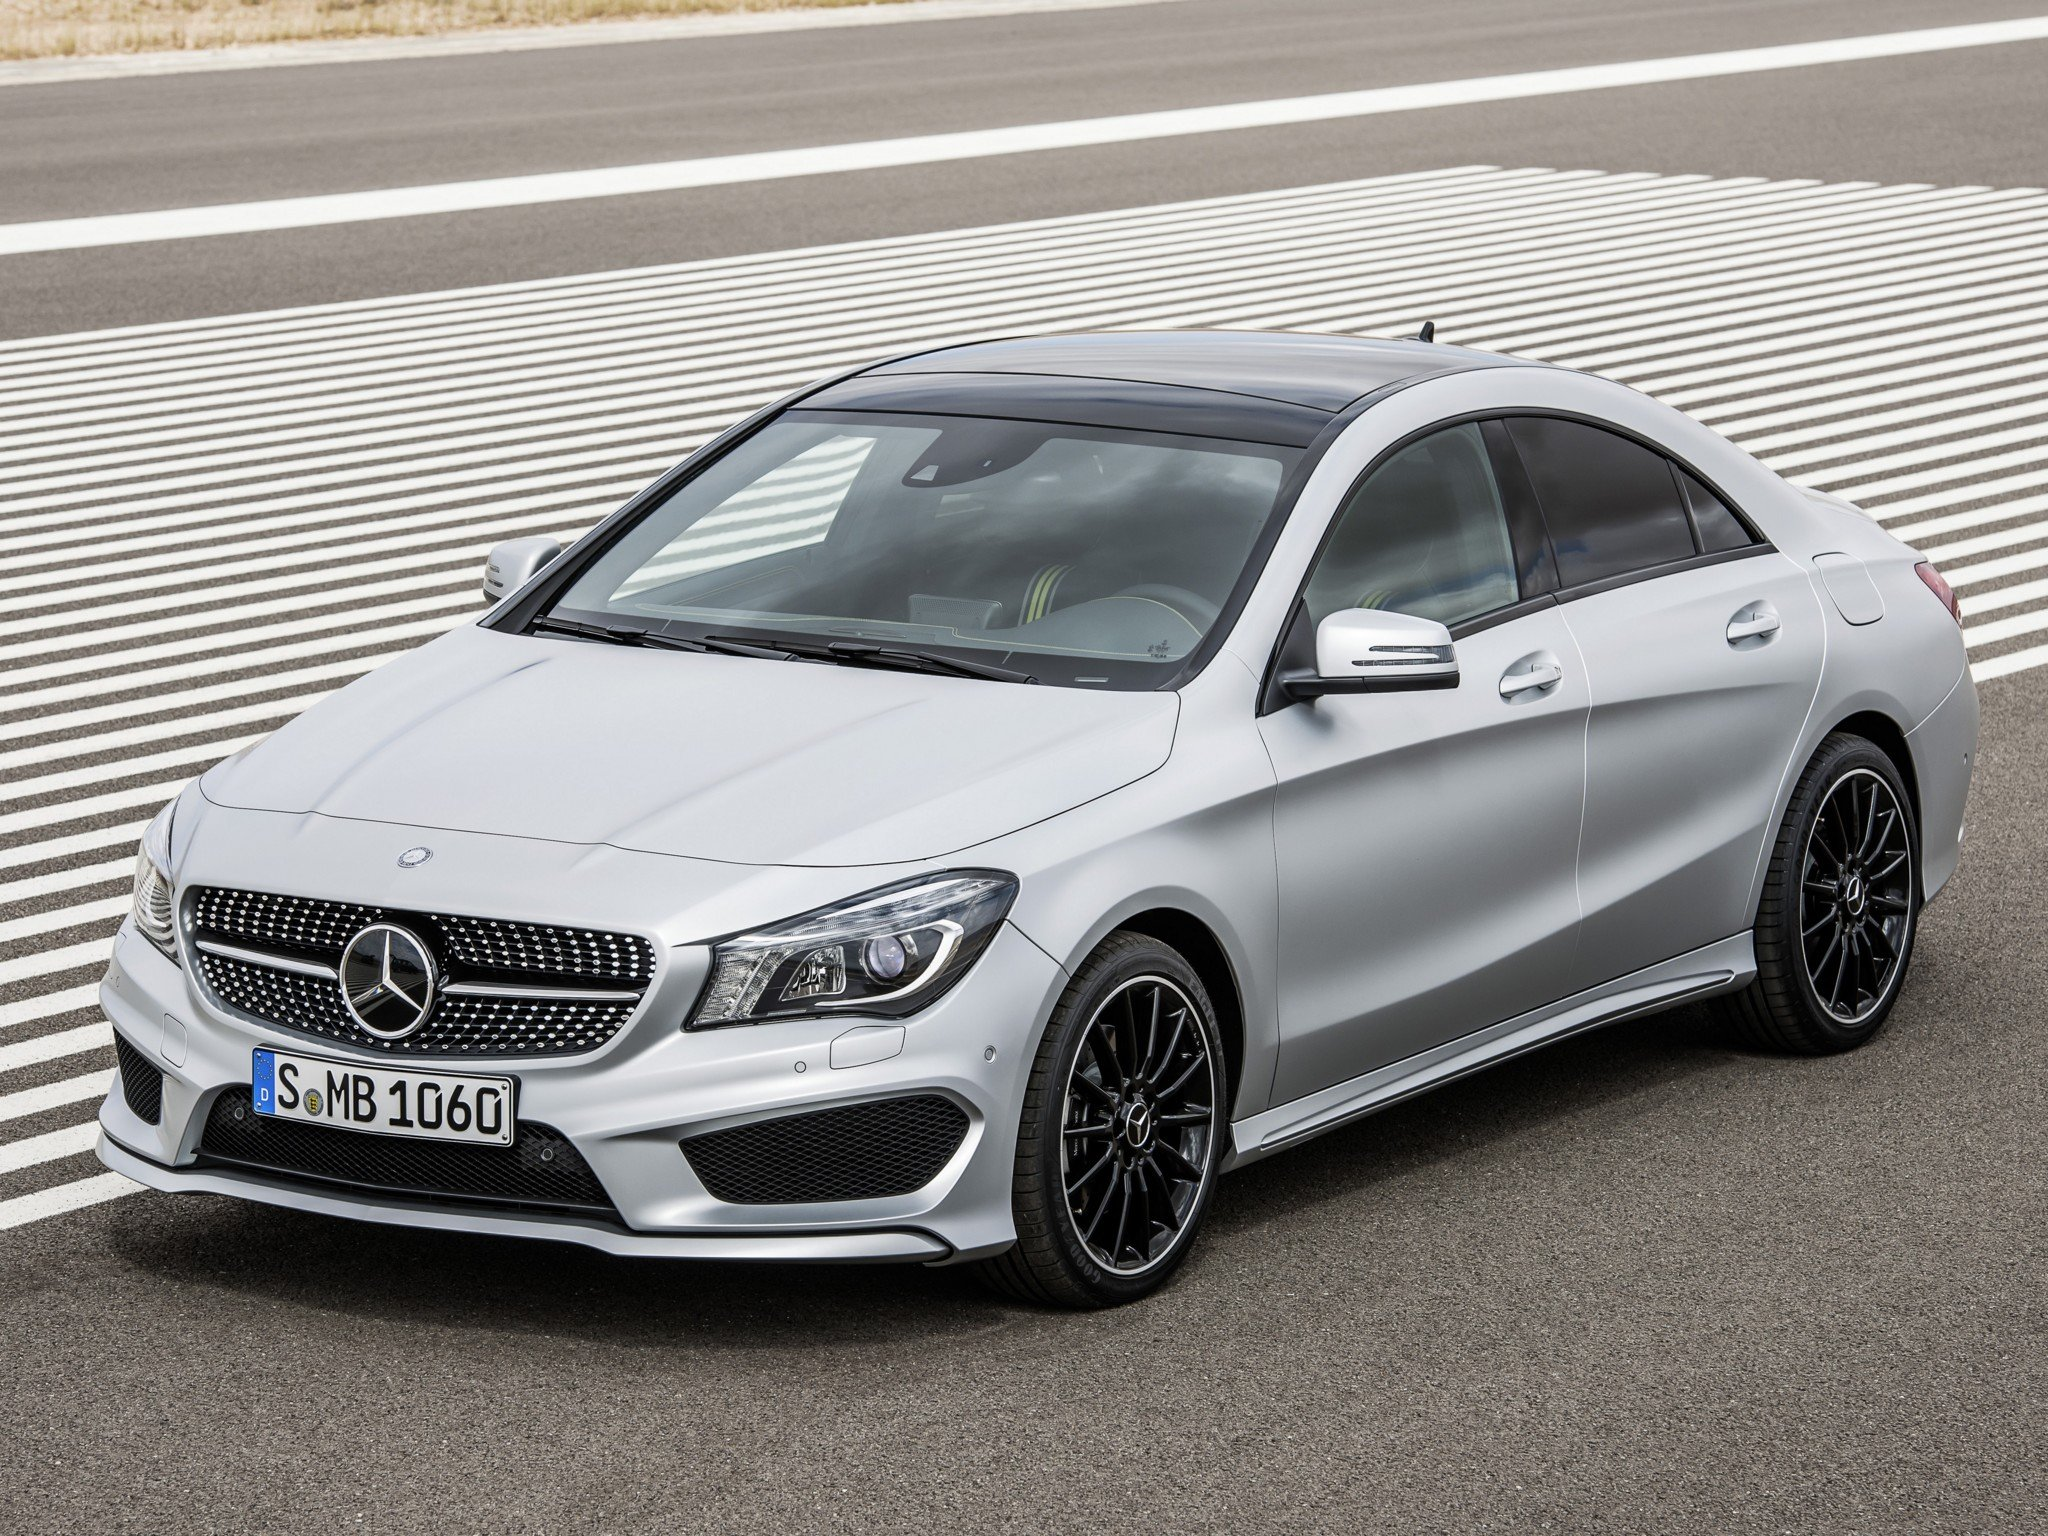 mercedes benz cla 250 amg sports package edition 1 c117 cars 2013 wallpaper 2048x1536 707255. Black Bedroom Furniture Sets. Home Design Ideas